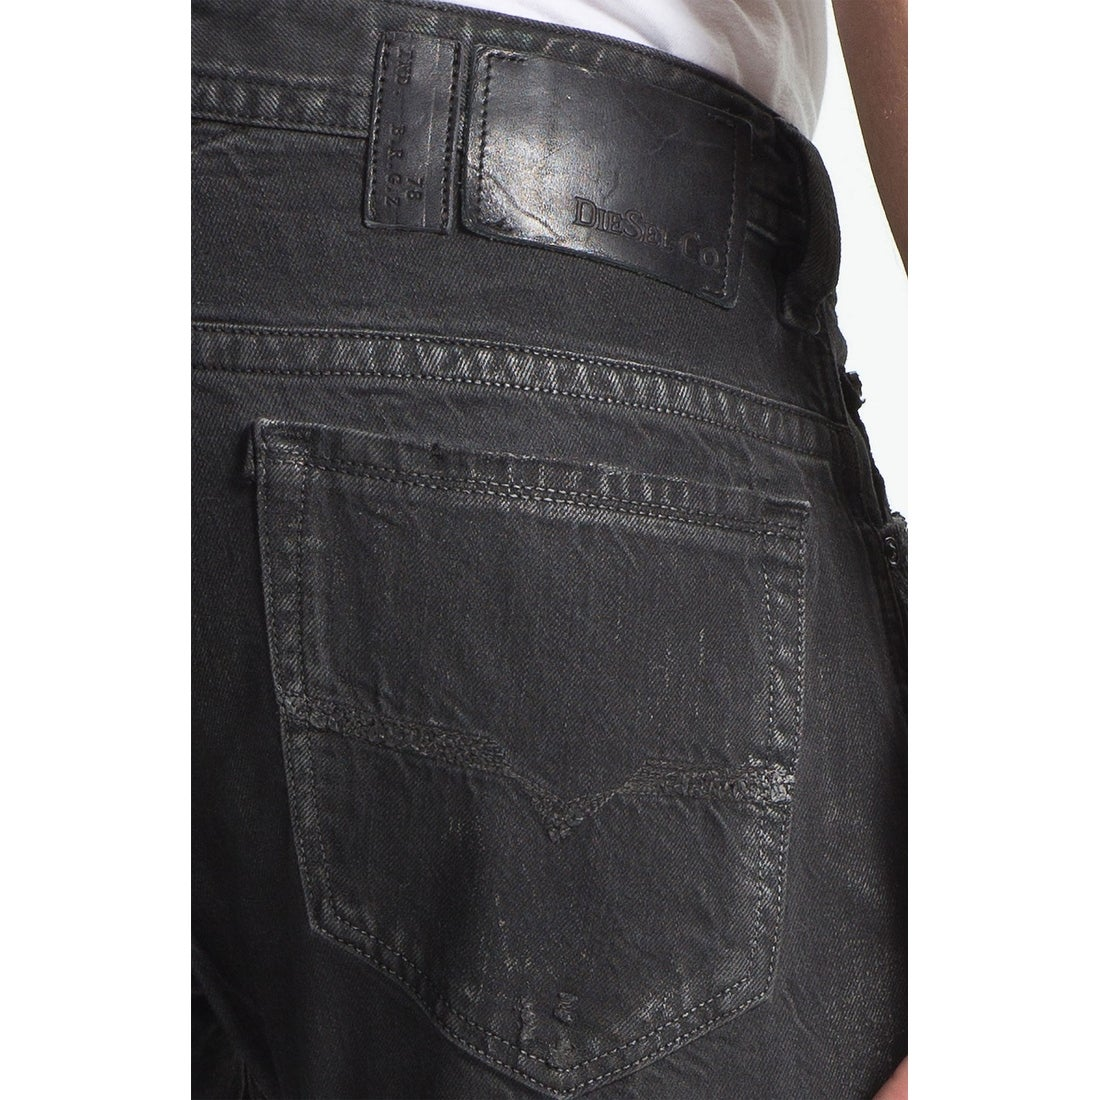 79caf987 Shop Diesel Mens Thavar Black Limited Edition Skinny Jeans 30x32, Retail -  Free Shipping Today - Overstock - 14367929